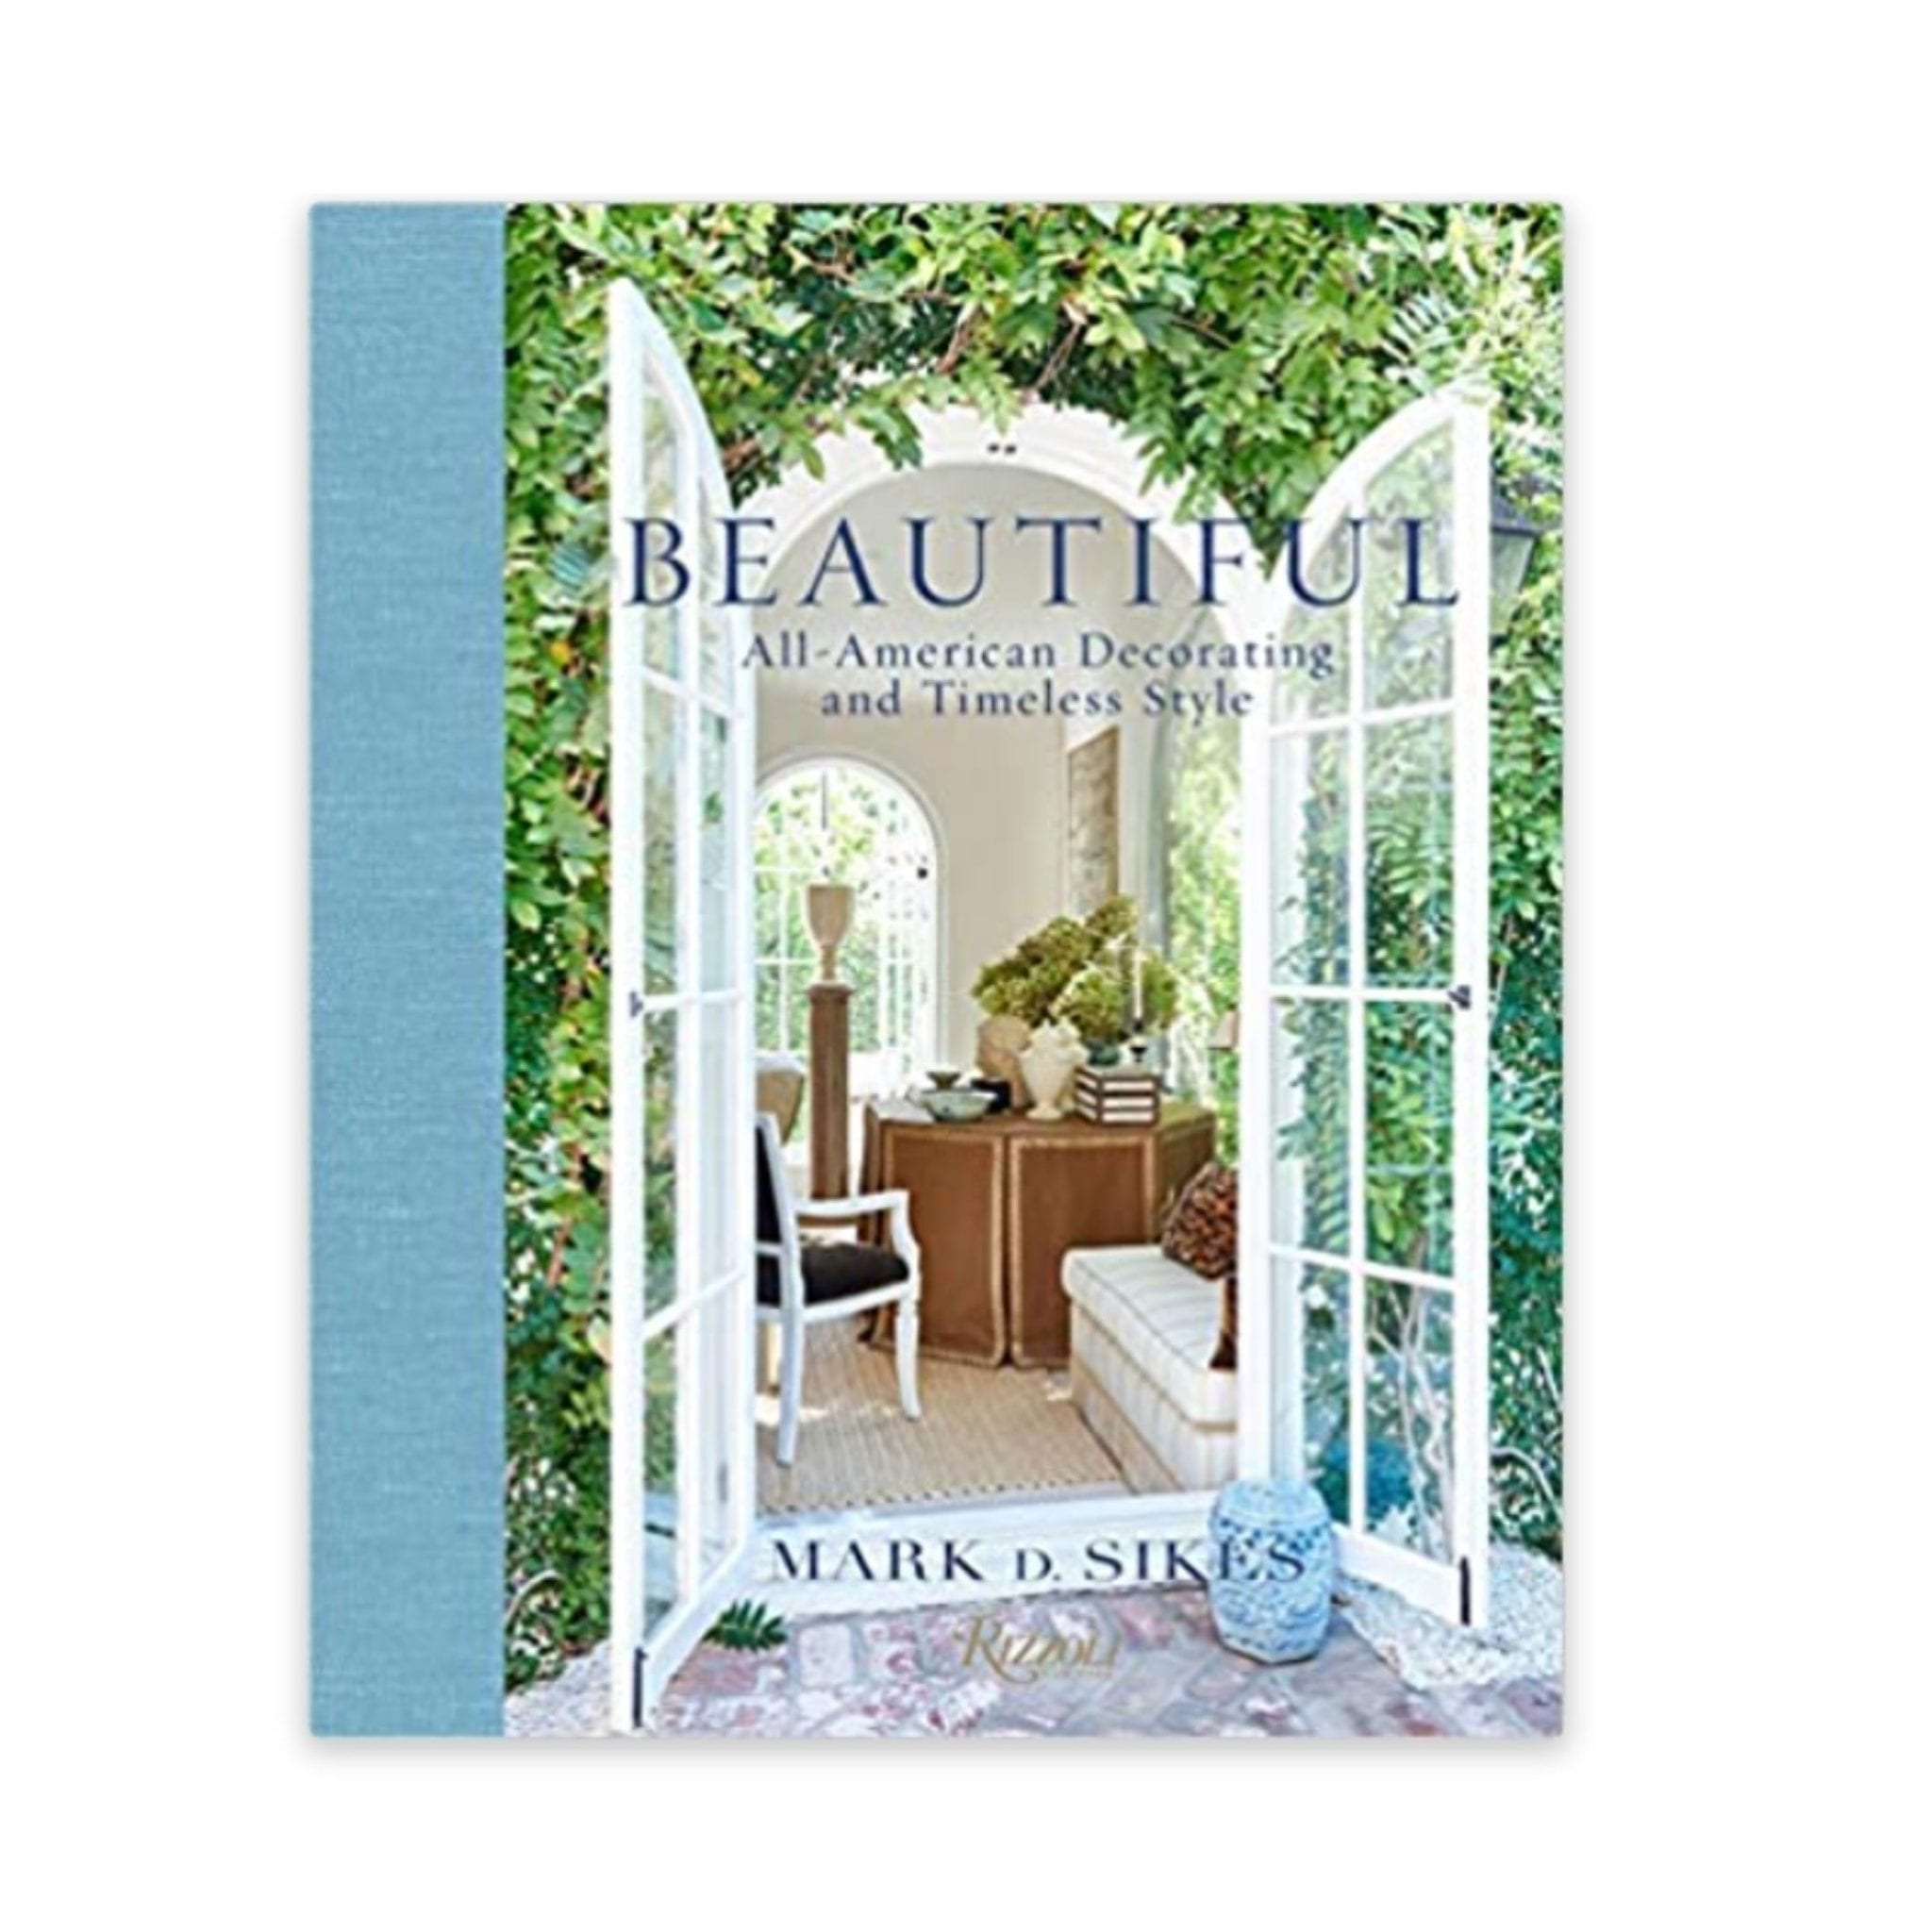 Mark D. Sikes Coffee Table Book